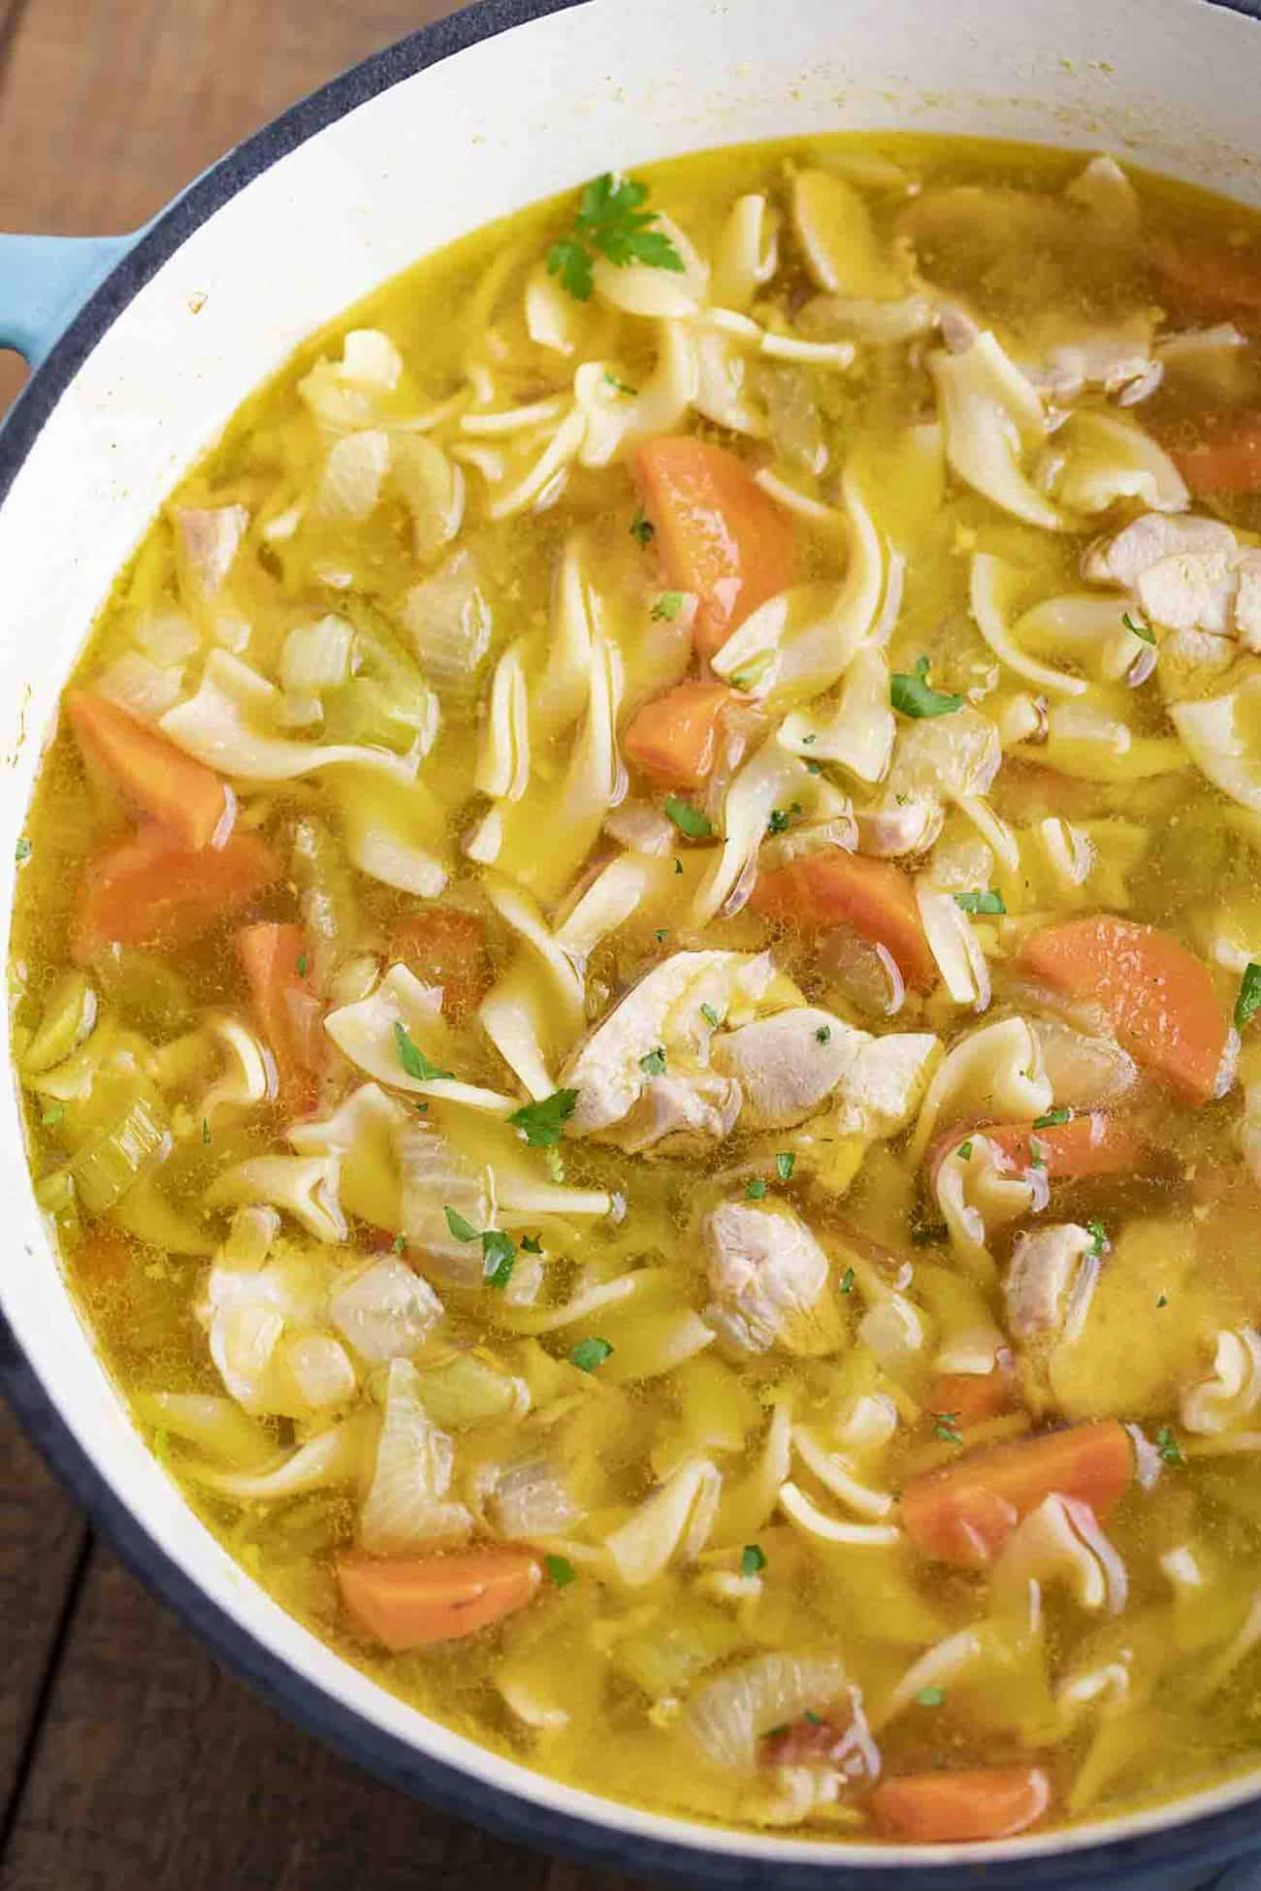 Classic Chicken Noodle Soup - Recipes Chicken Broth